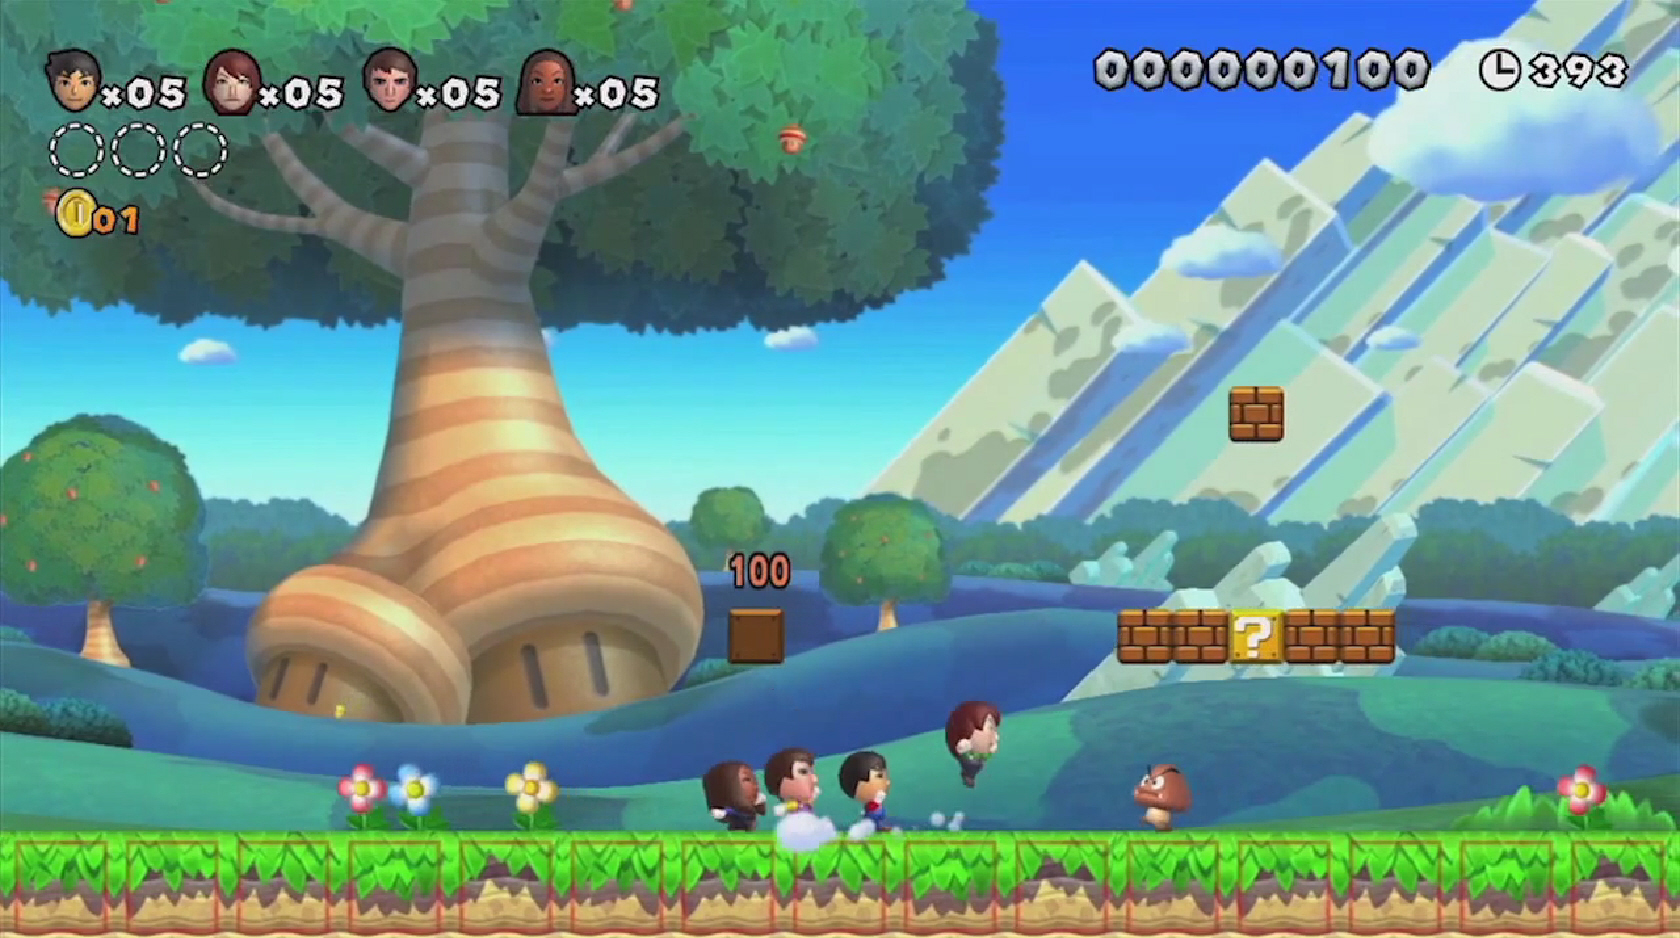 Playable Instead Of Other Mario Characters In New Super Mario Bros. U